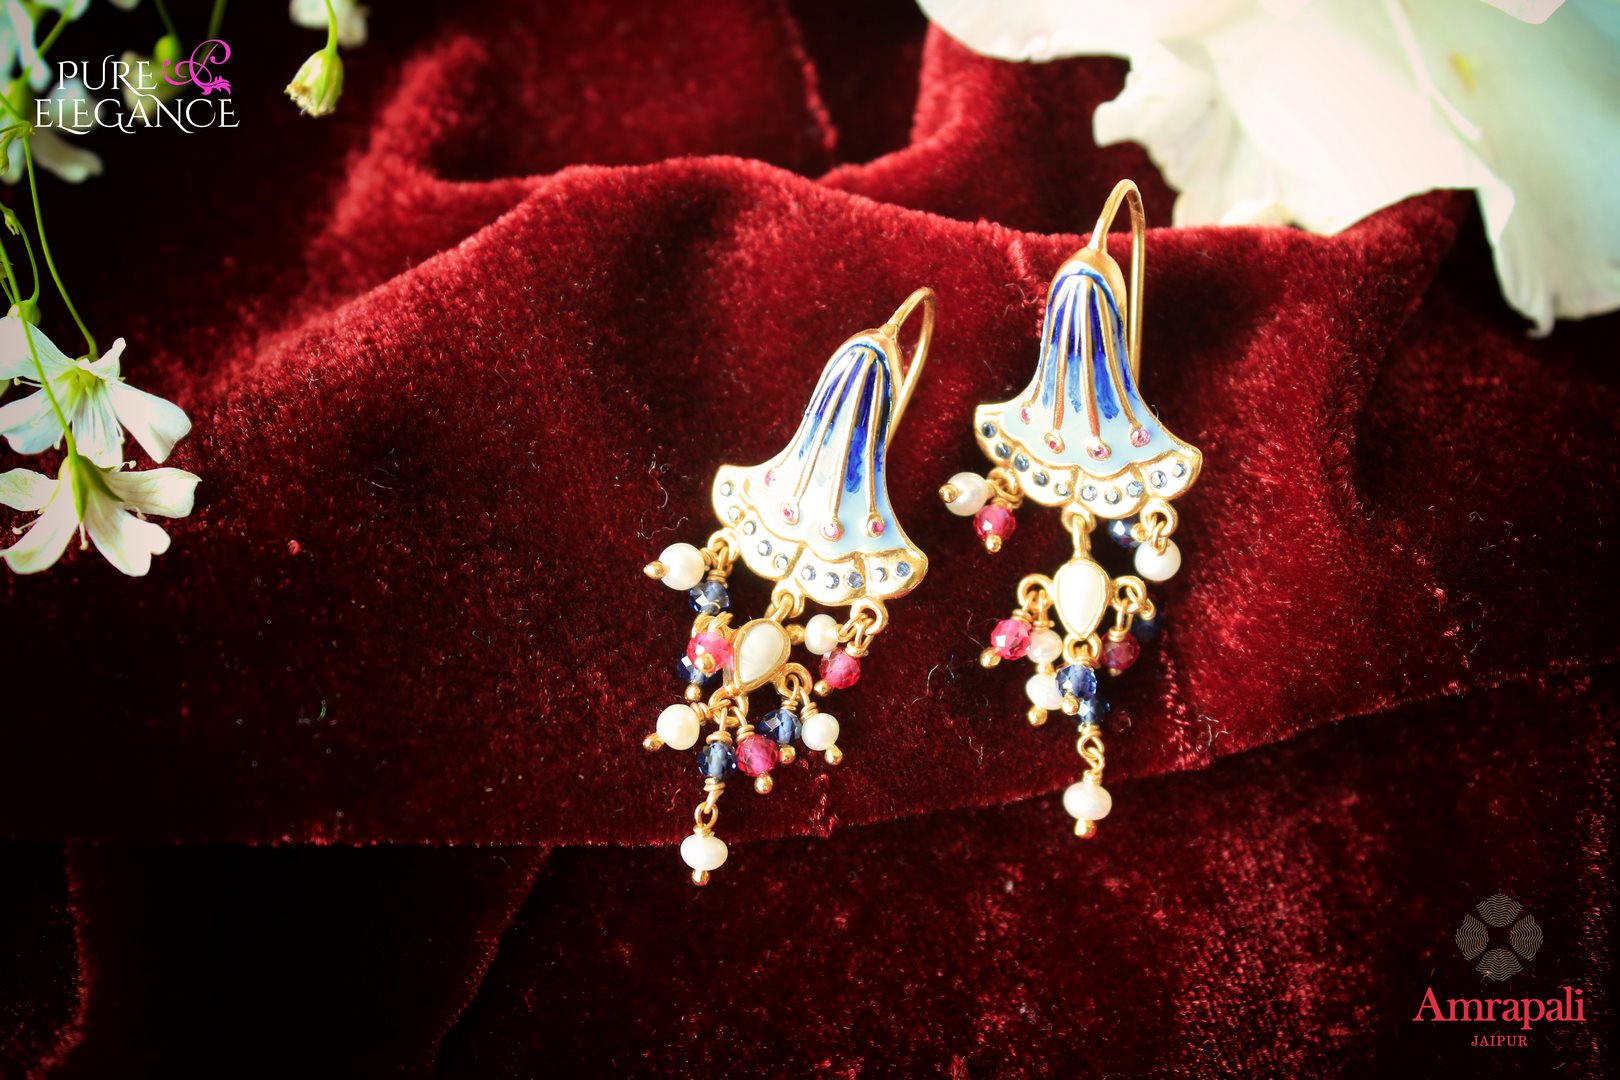 Buy Amrapali silver gold plated enamel blue bell earrings online in USA. If you are looking for Indian jewelry in USA, then Pure Elegance Indian fashion store is the place for you. A whole range of exquisite silver gold plated earrings, necklaces is waiting for you on our shelves, you can also opt to shop online.-flat lay